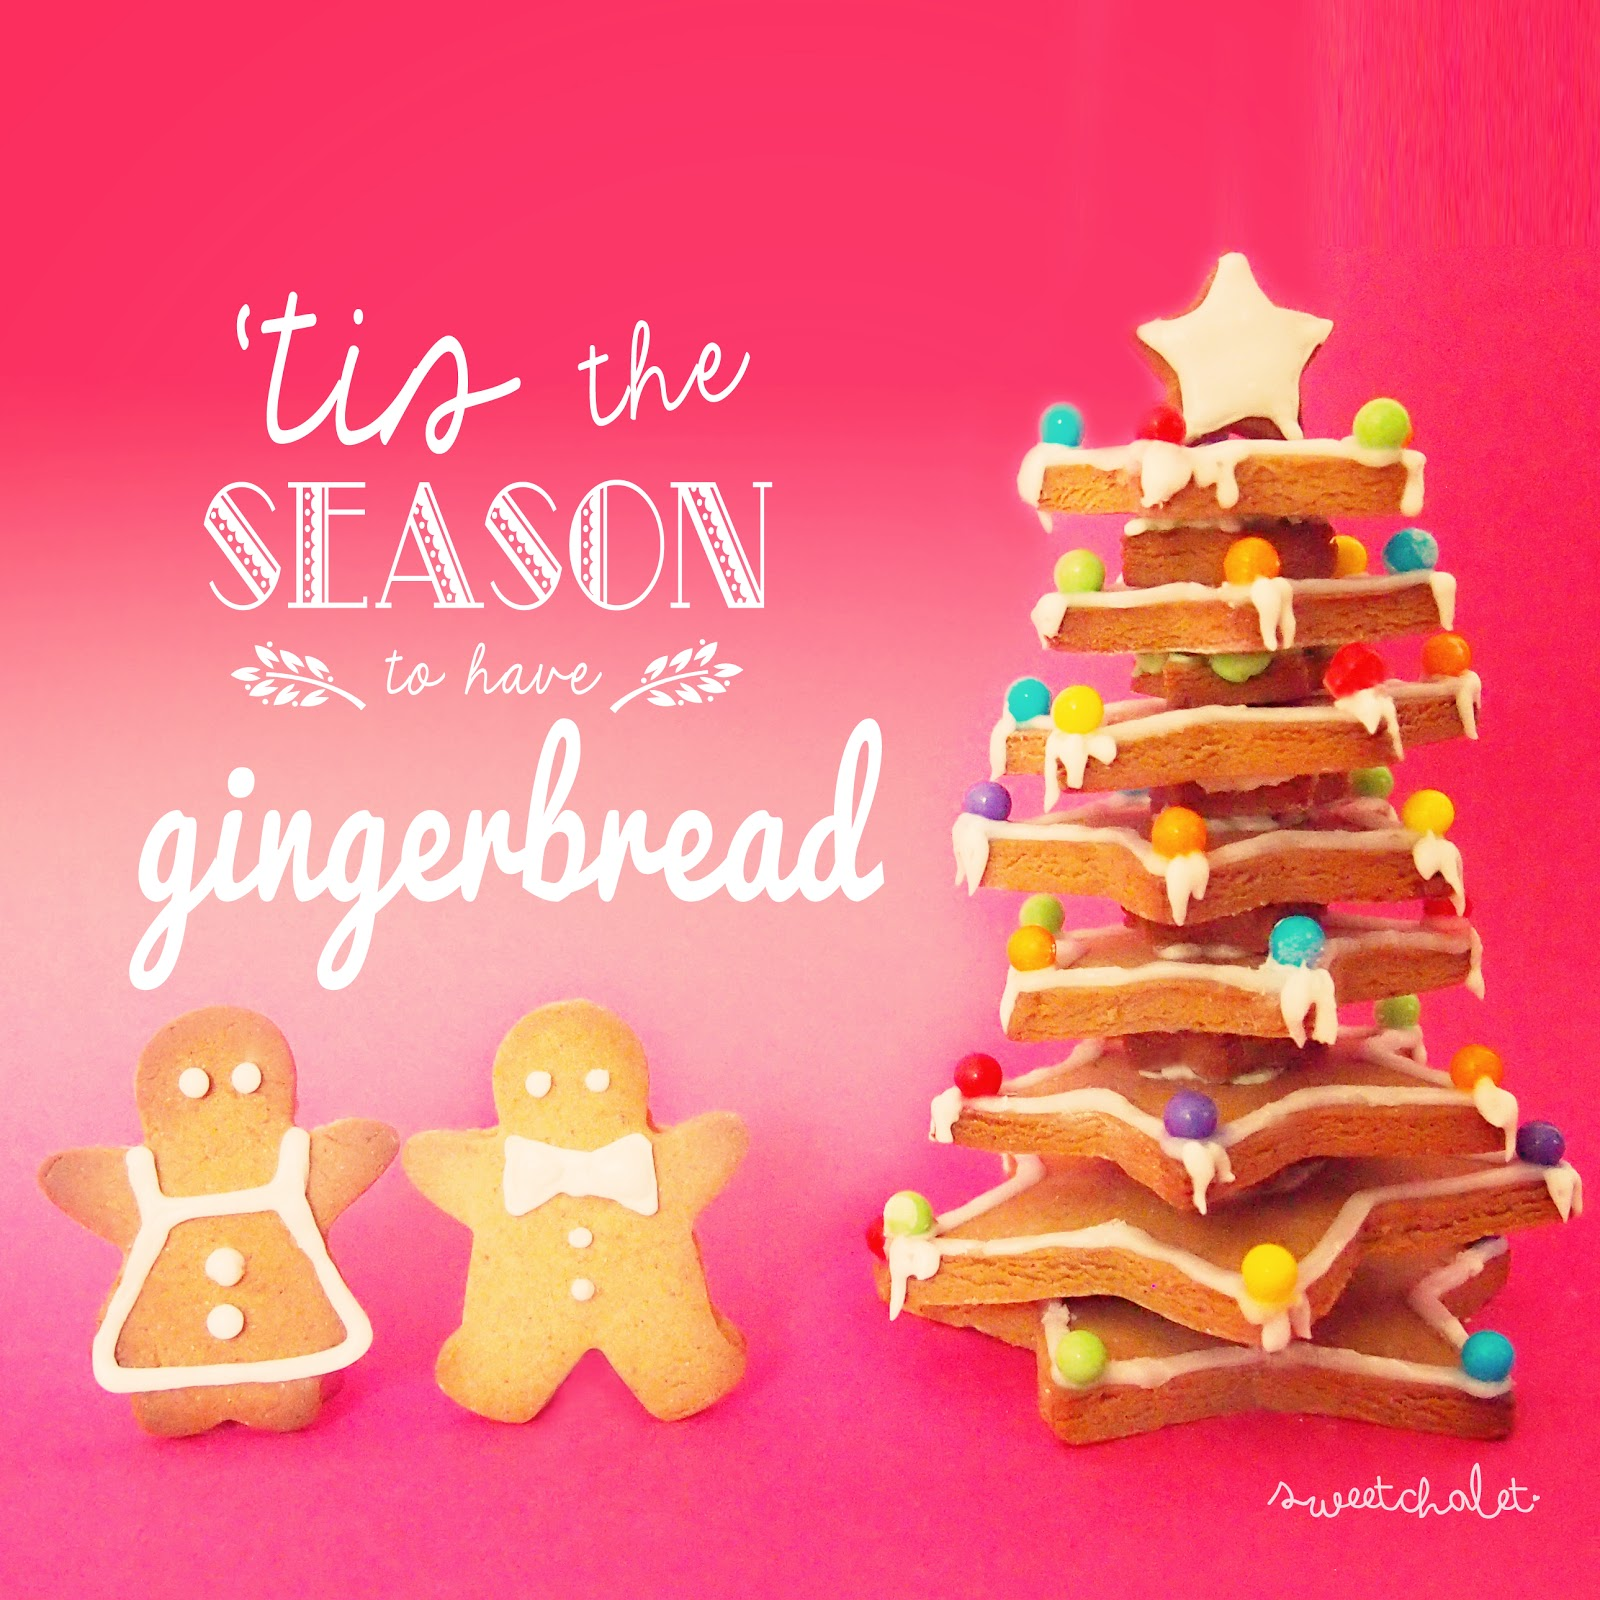 tis the season to have gingerbread (cookies)!